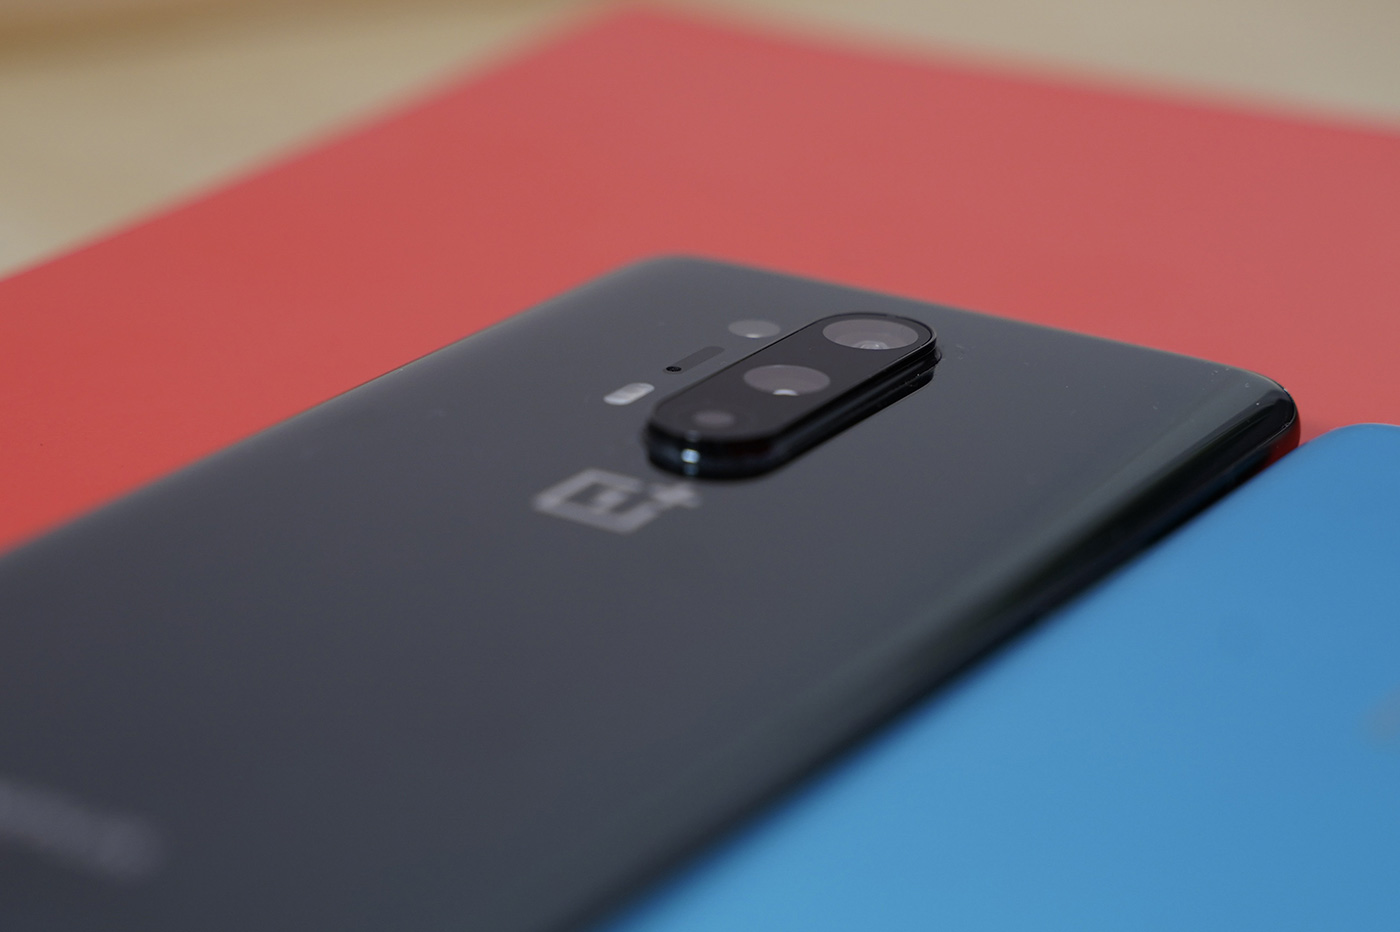 The OnePlus 8 Pro photo block